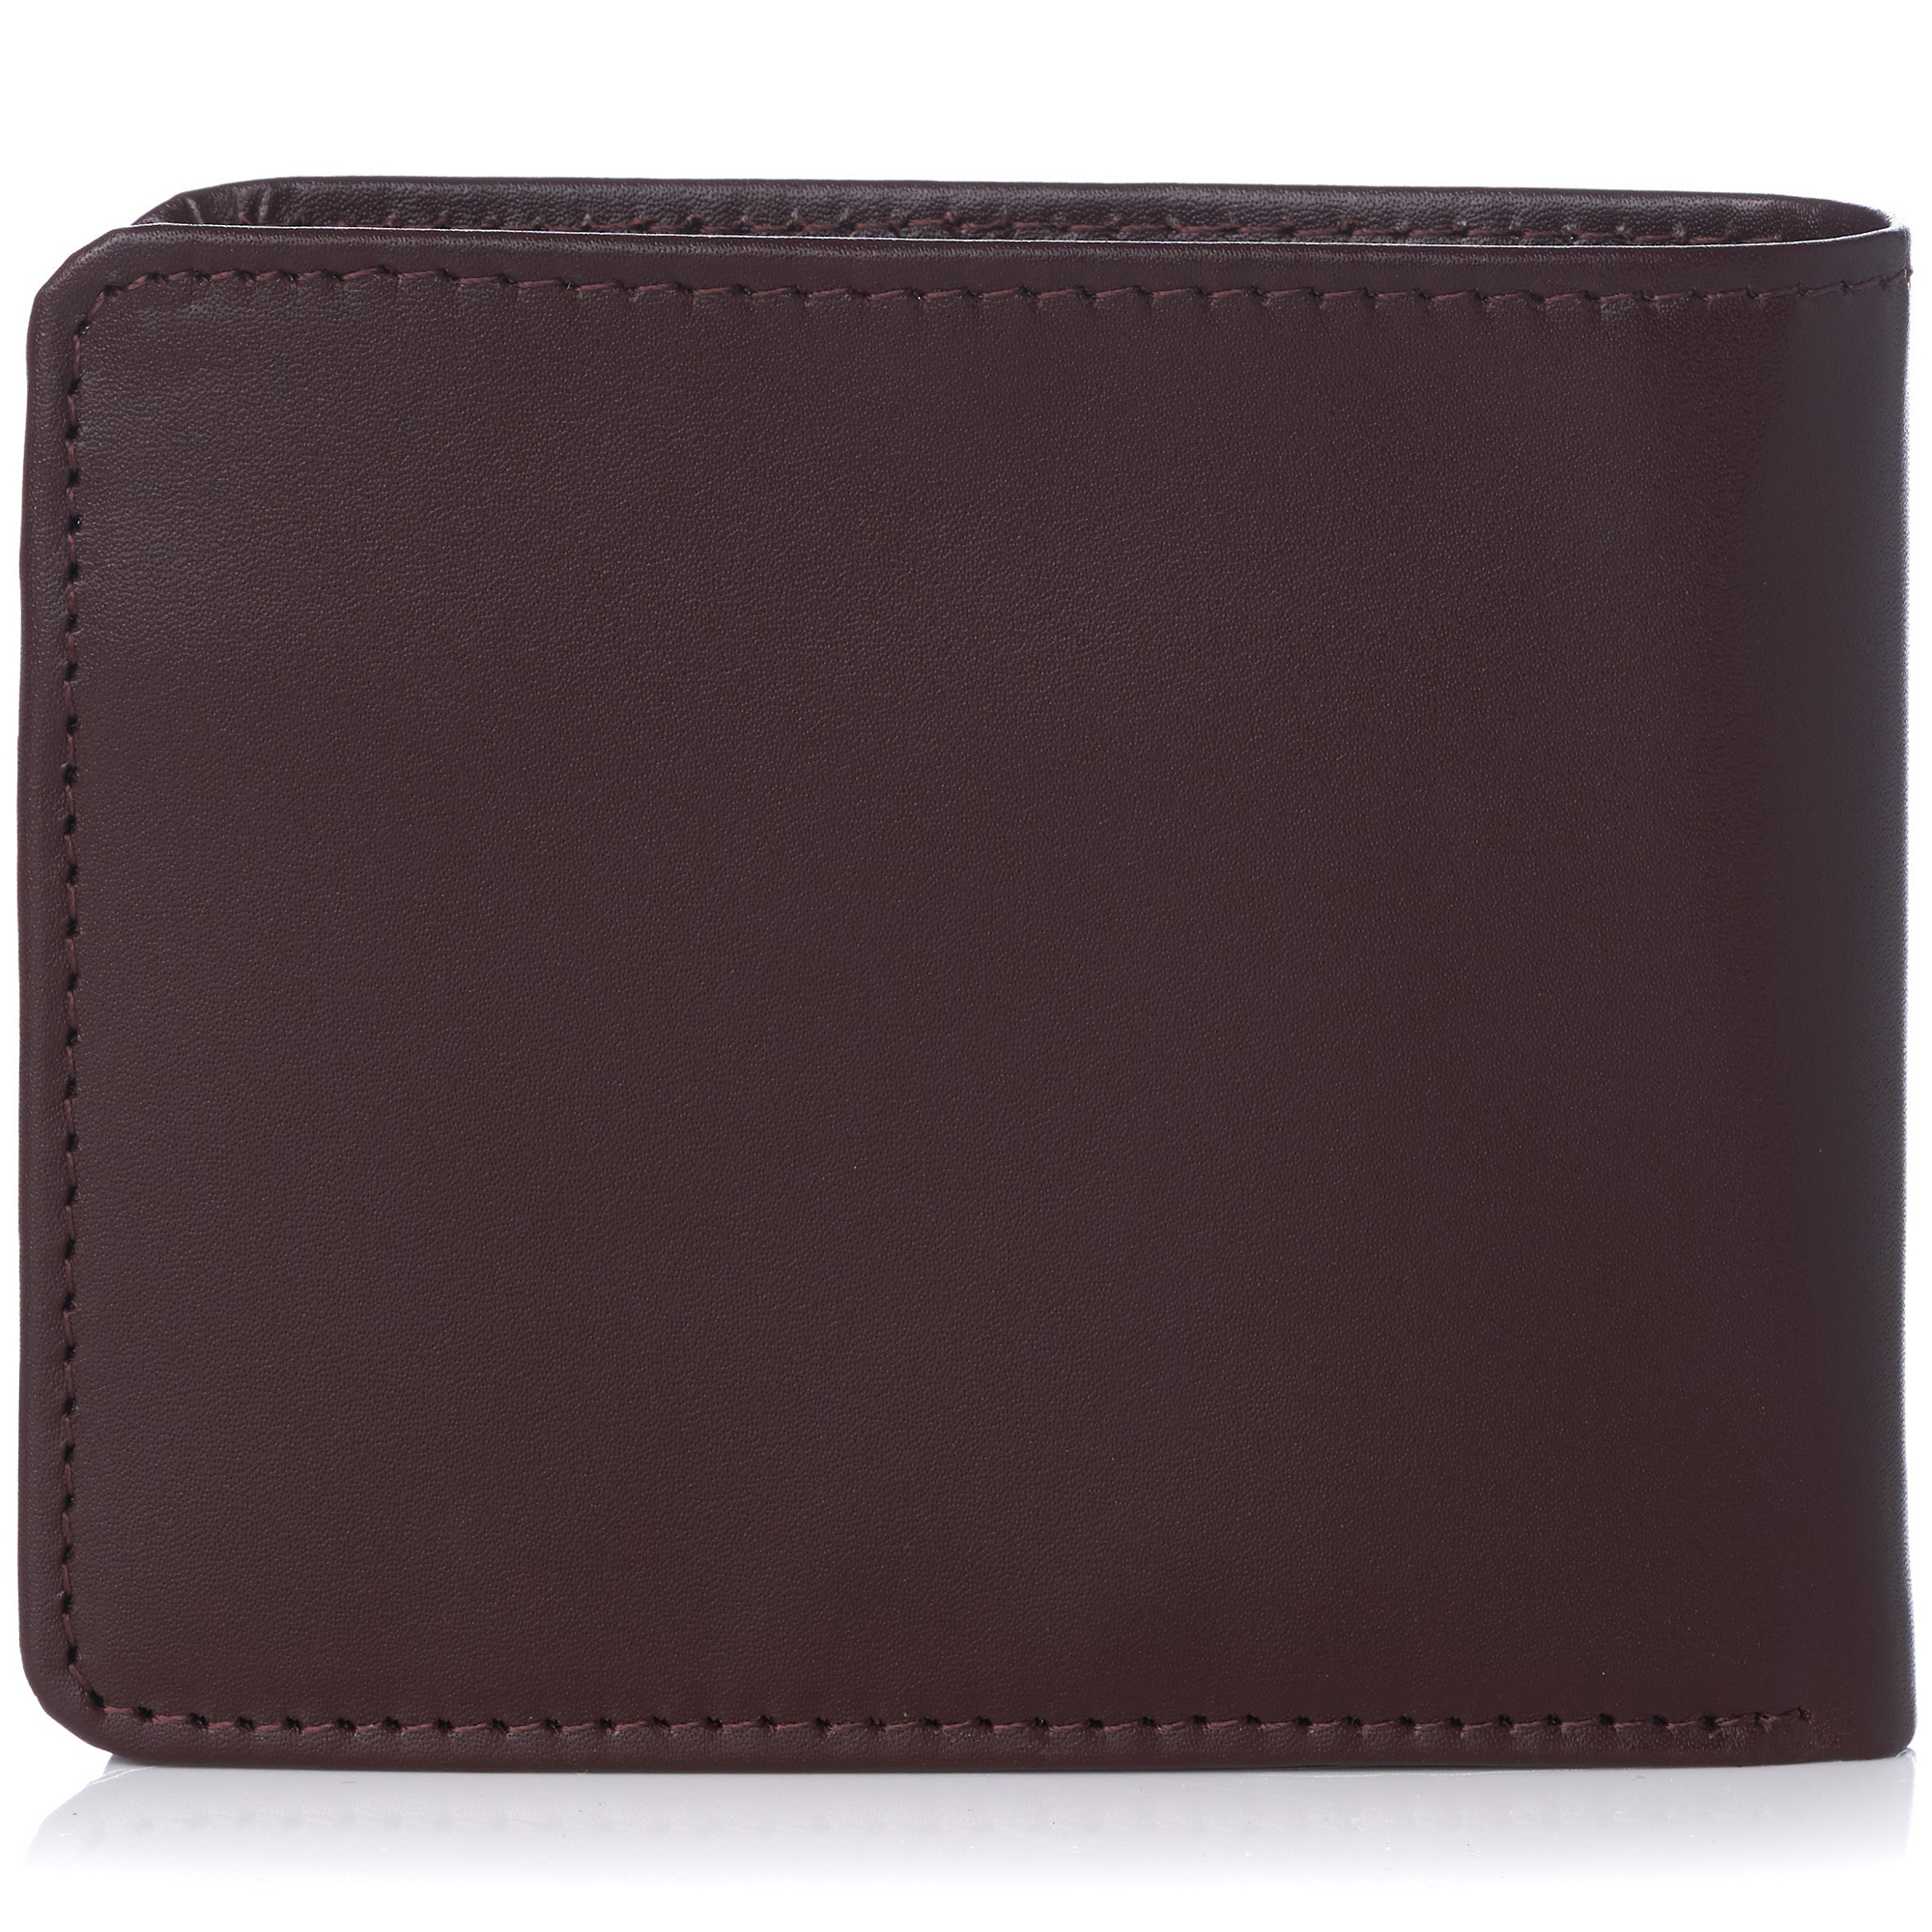 Alpine Swiss RFID Safe Mens Leather Wallet Deluxe Capacity Coin Pocket Bifold